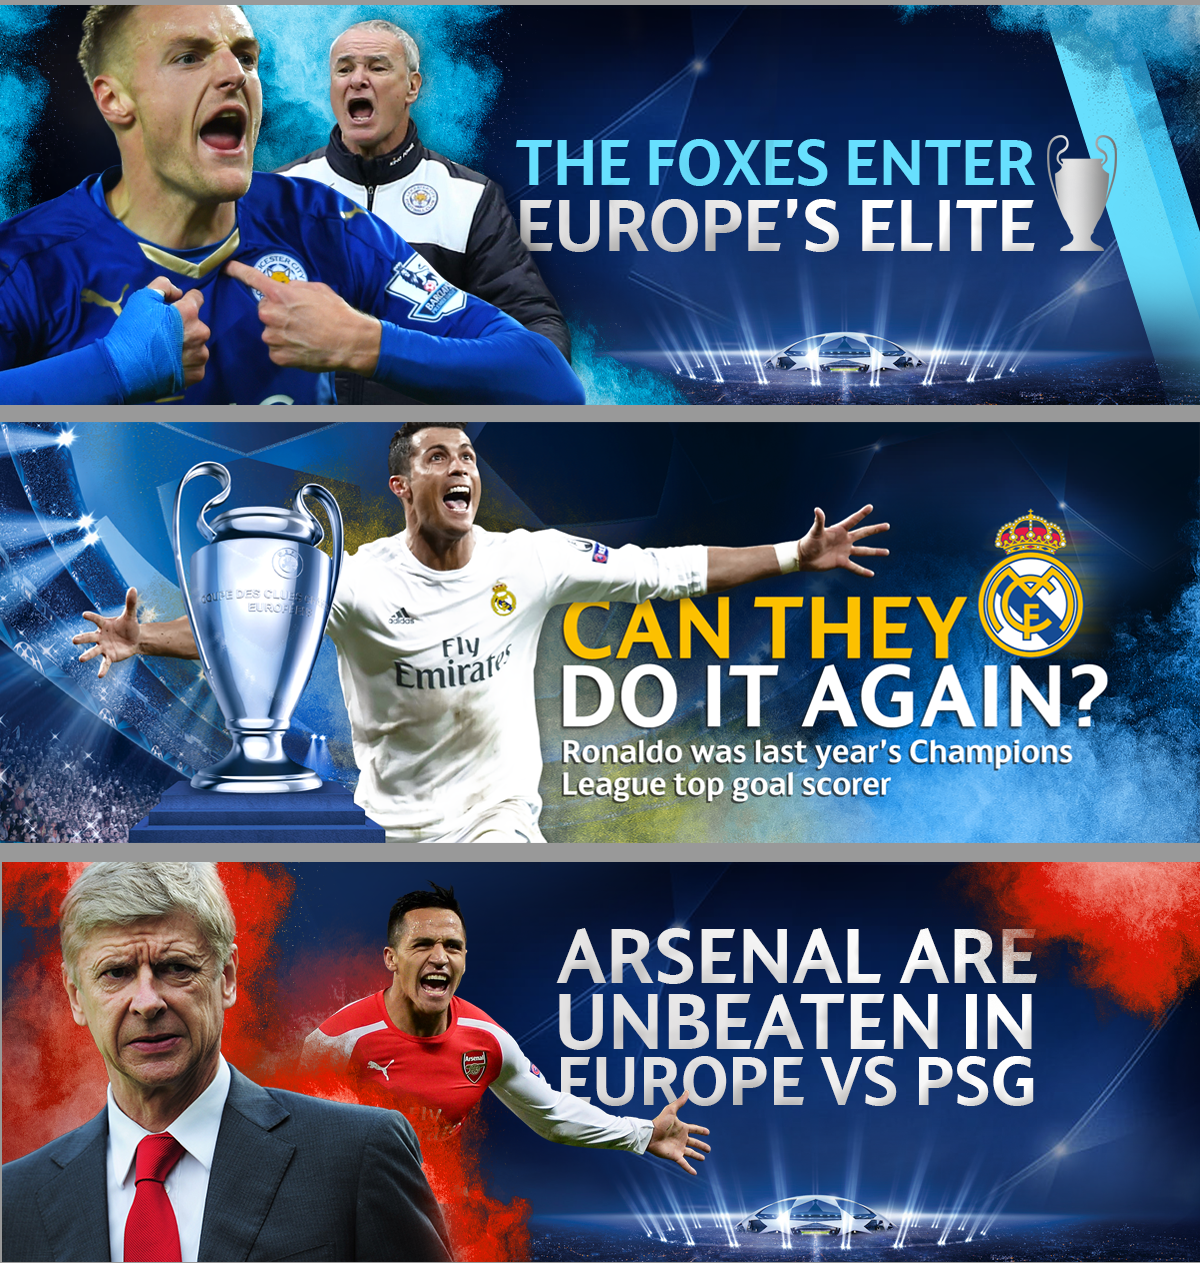 UEFA-Banners-P7